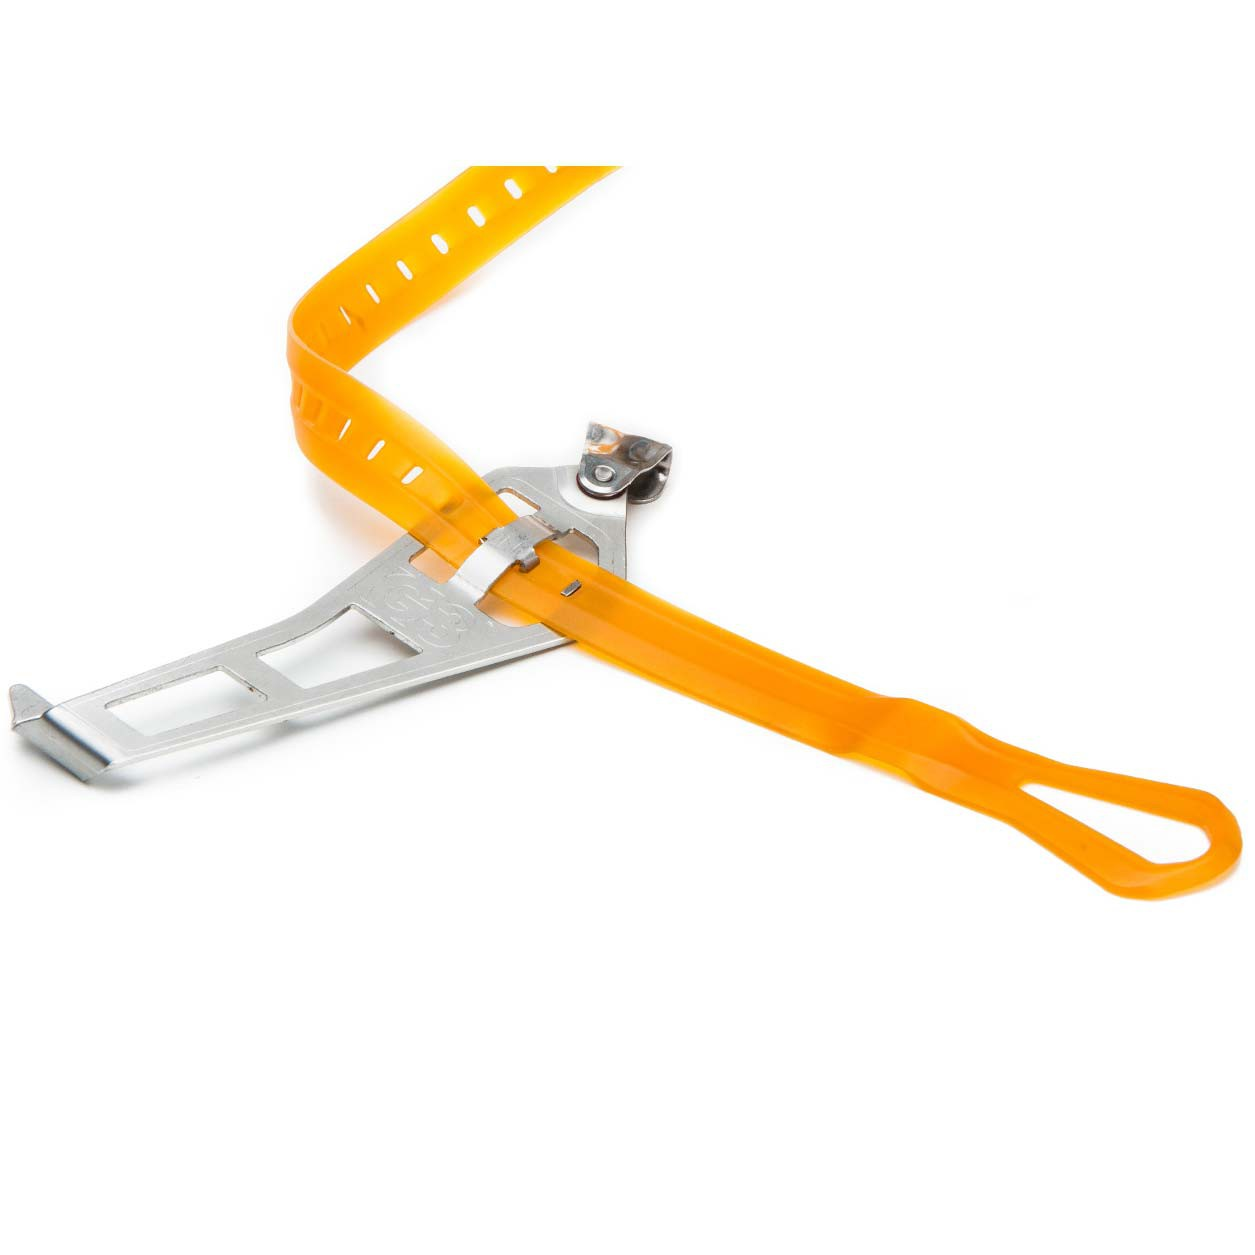 G3 Alpinist Splitboard High Traction 140mm